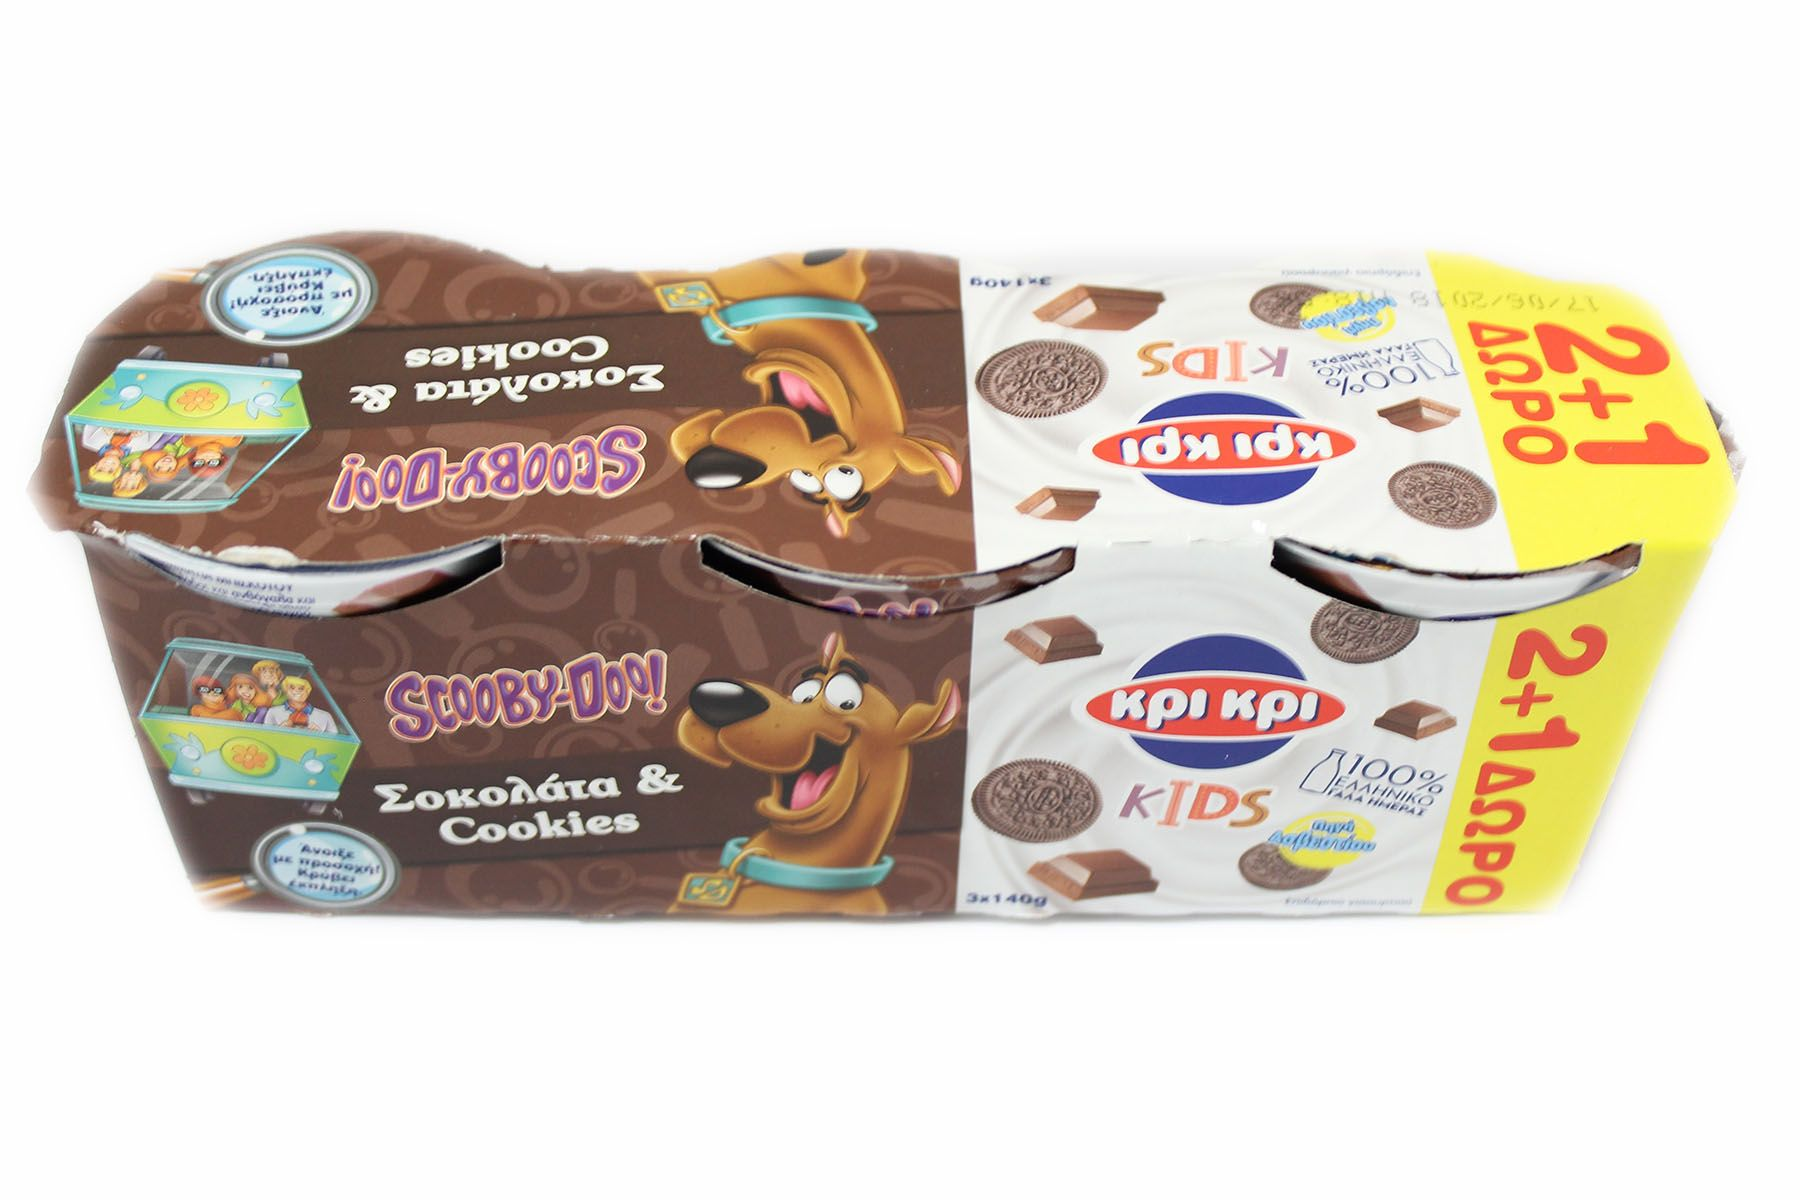 Scooby Doo Food and Beverage Yoghurt